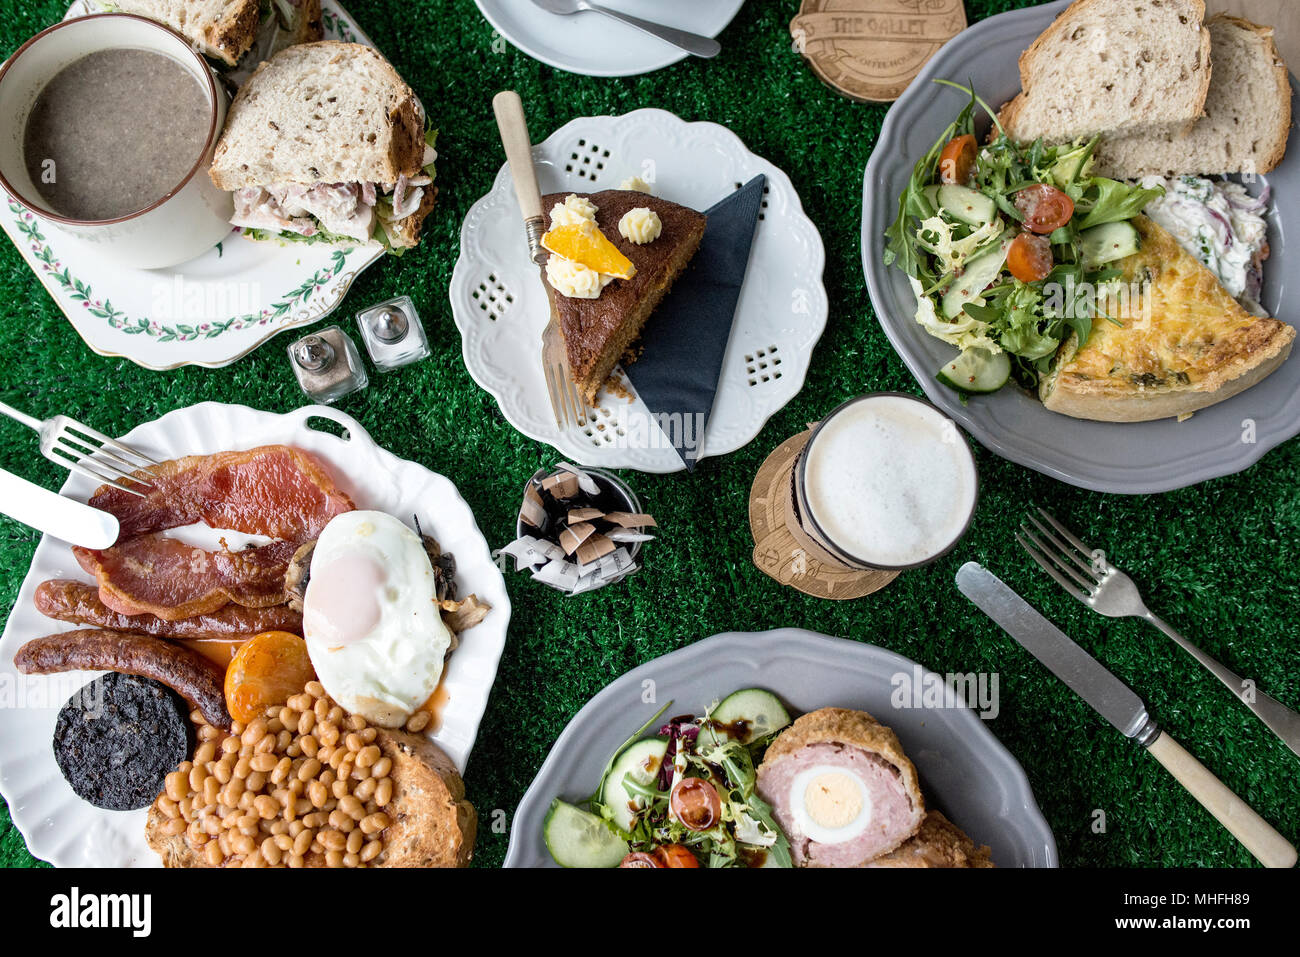 Cafe Food Shot From Above - Stock Image